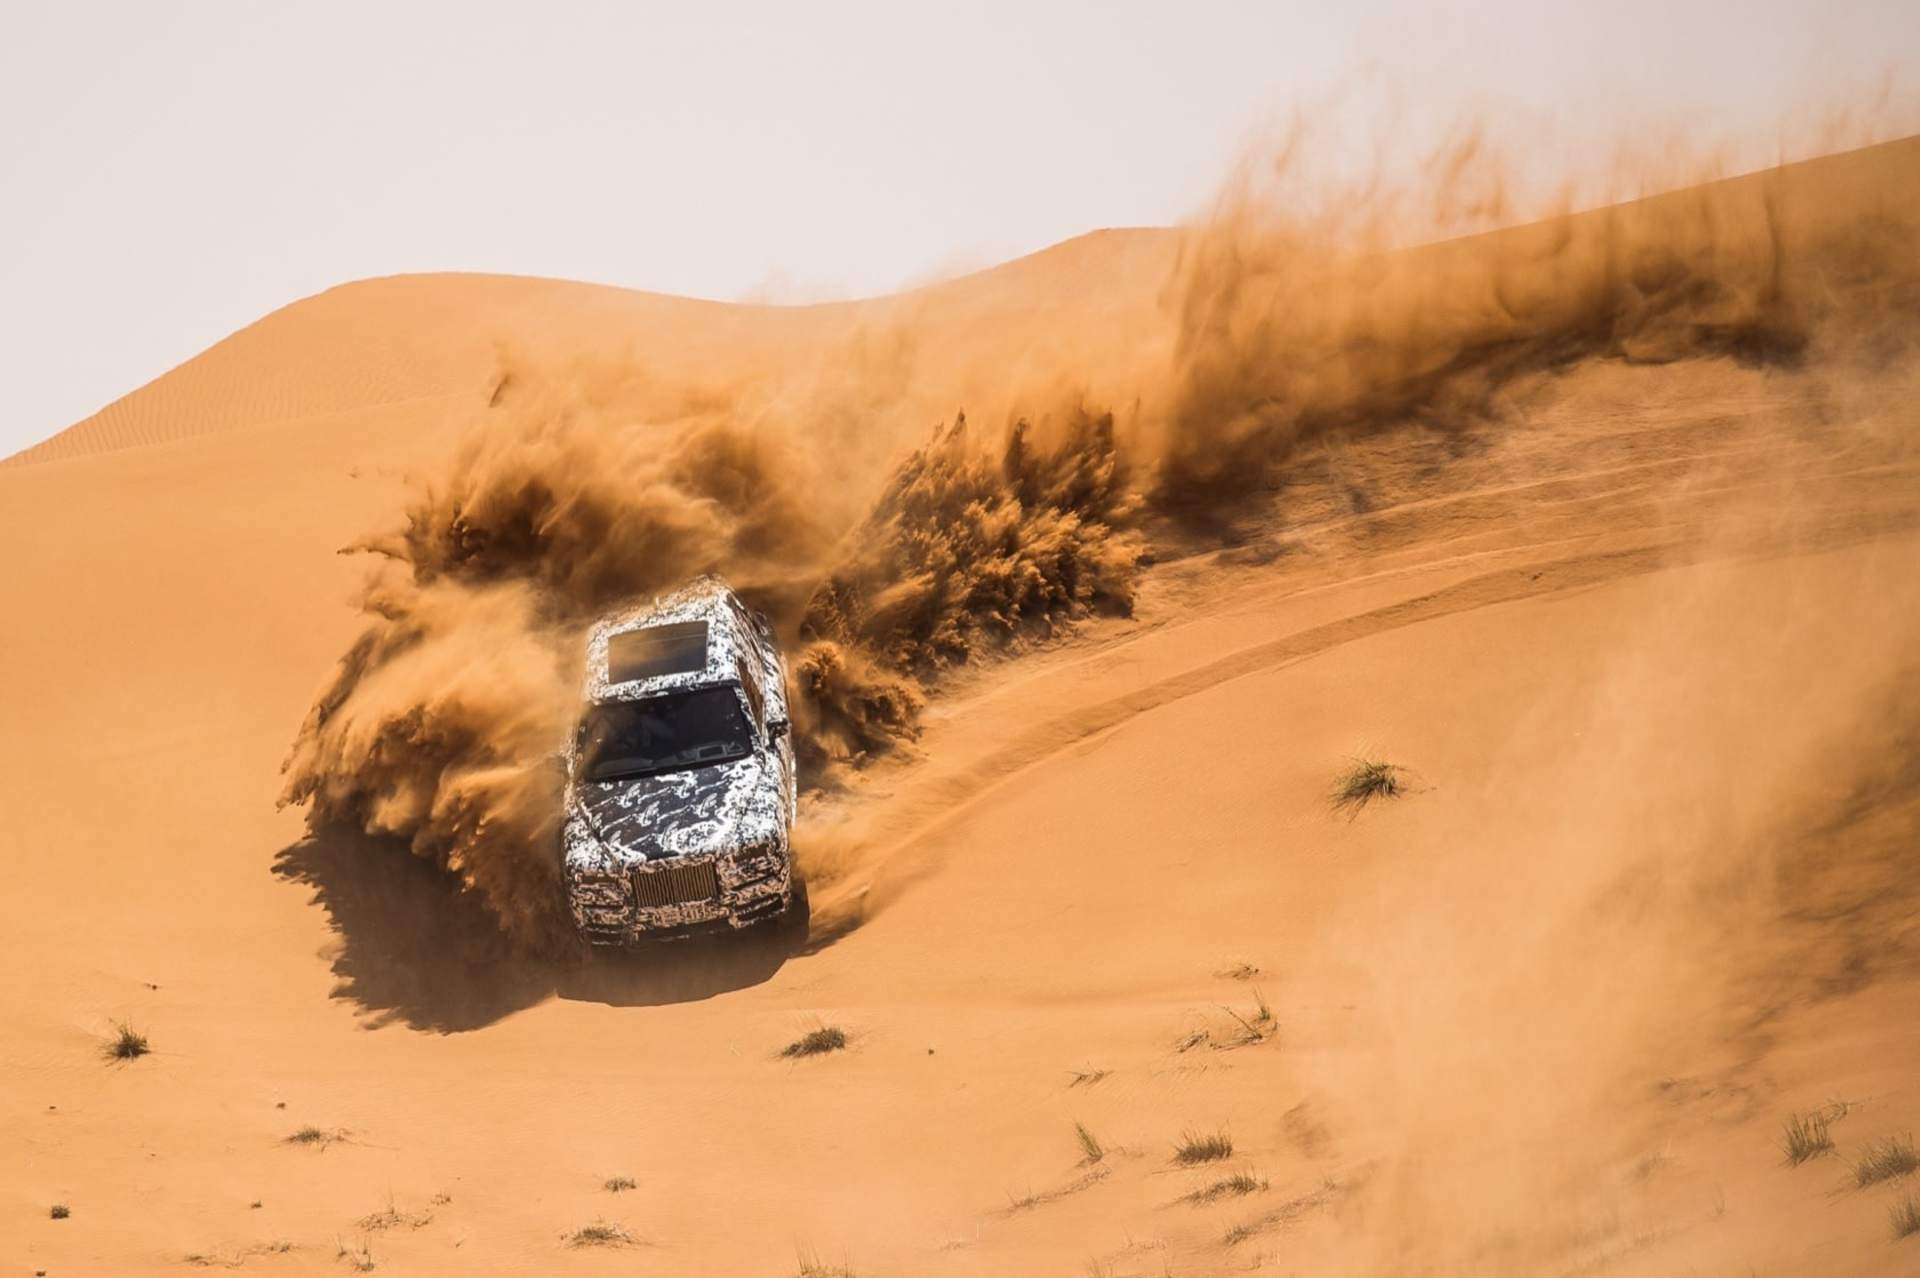 A Rolls-Royce Cullinan motor car drives through a desert